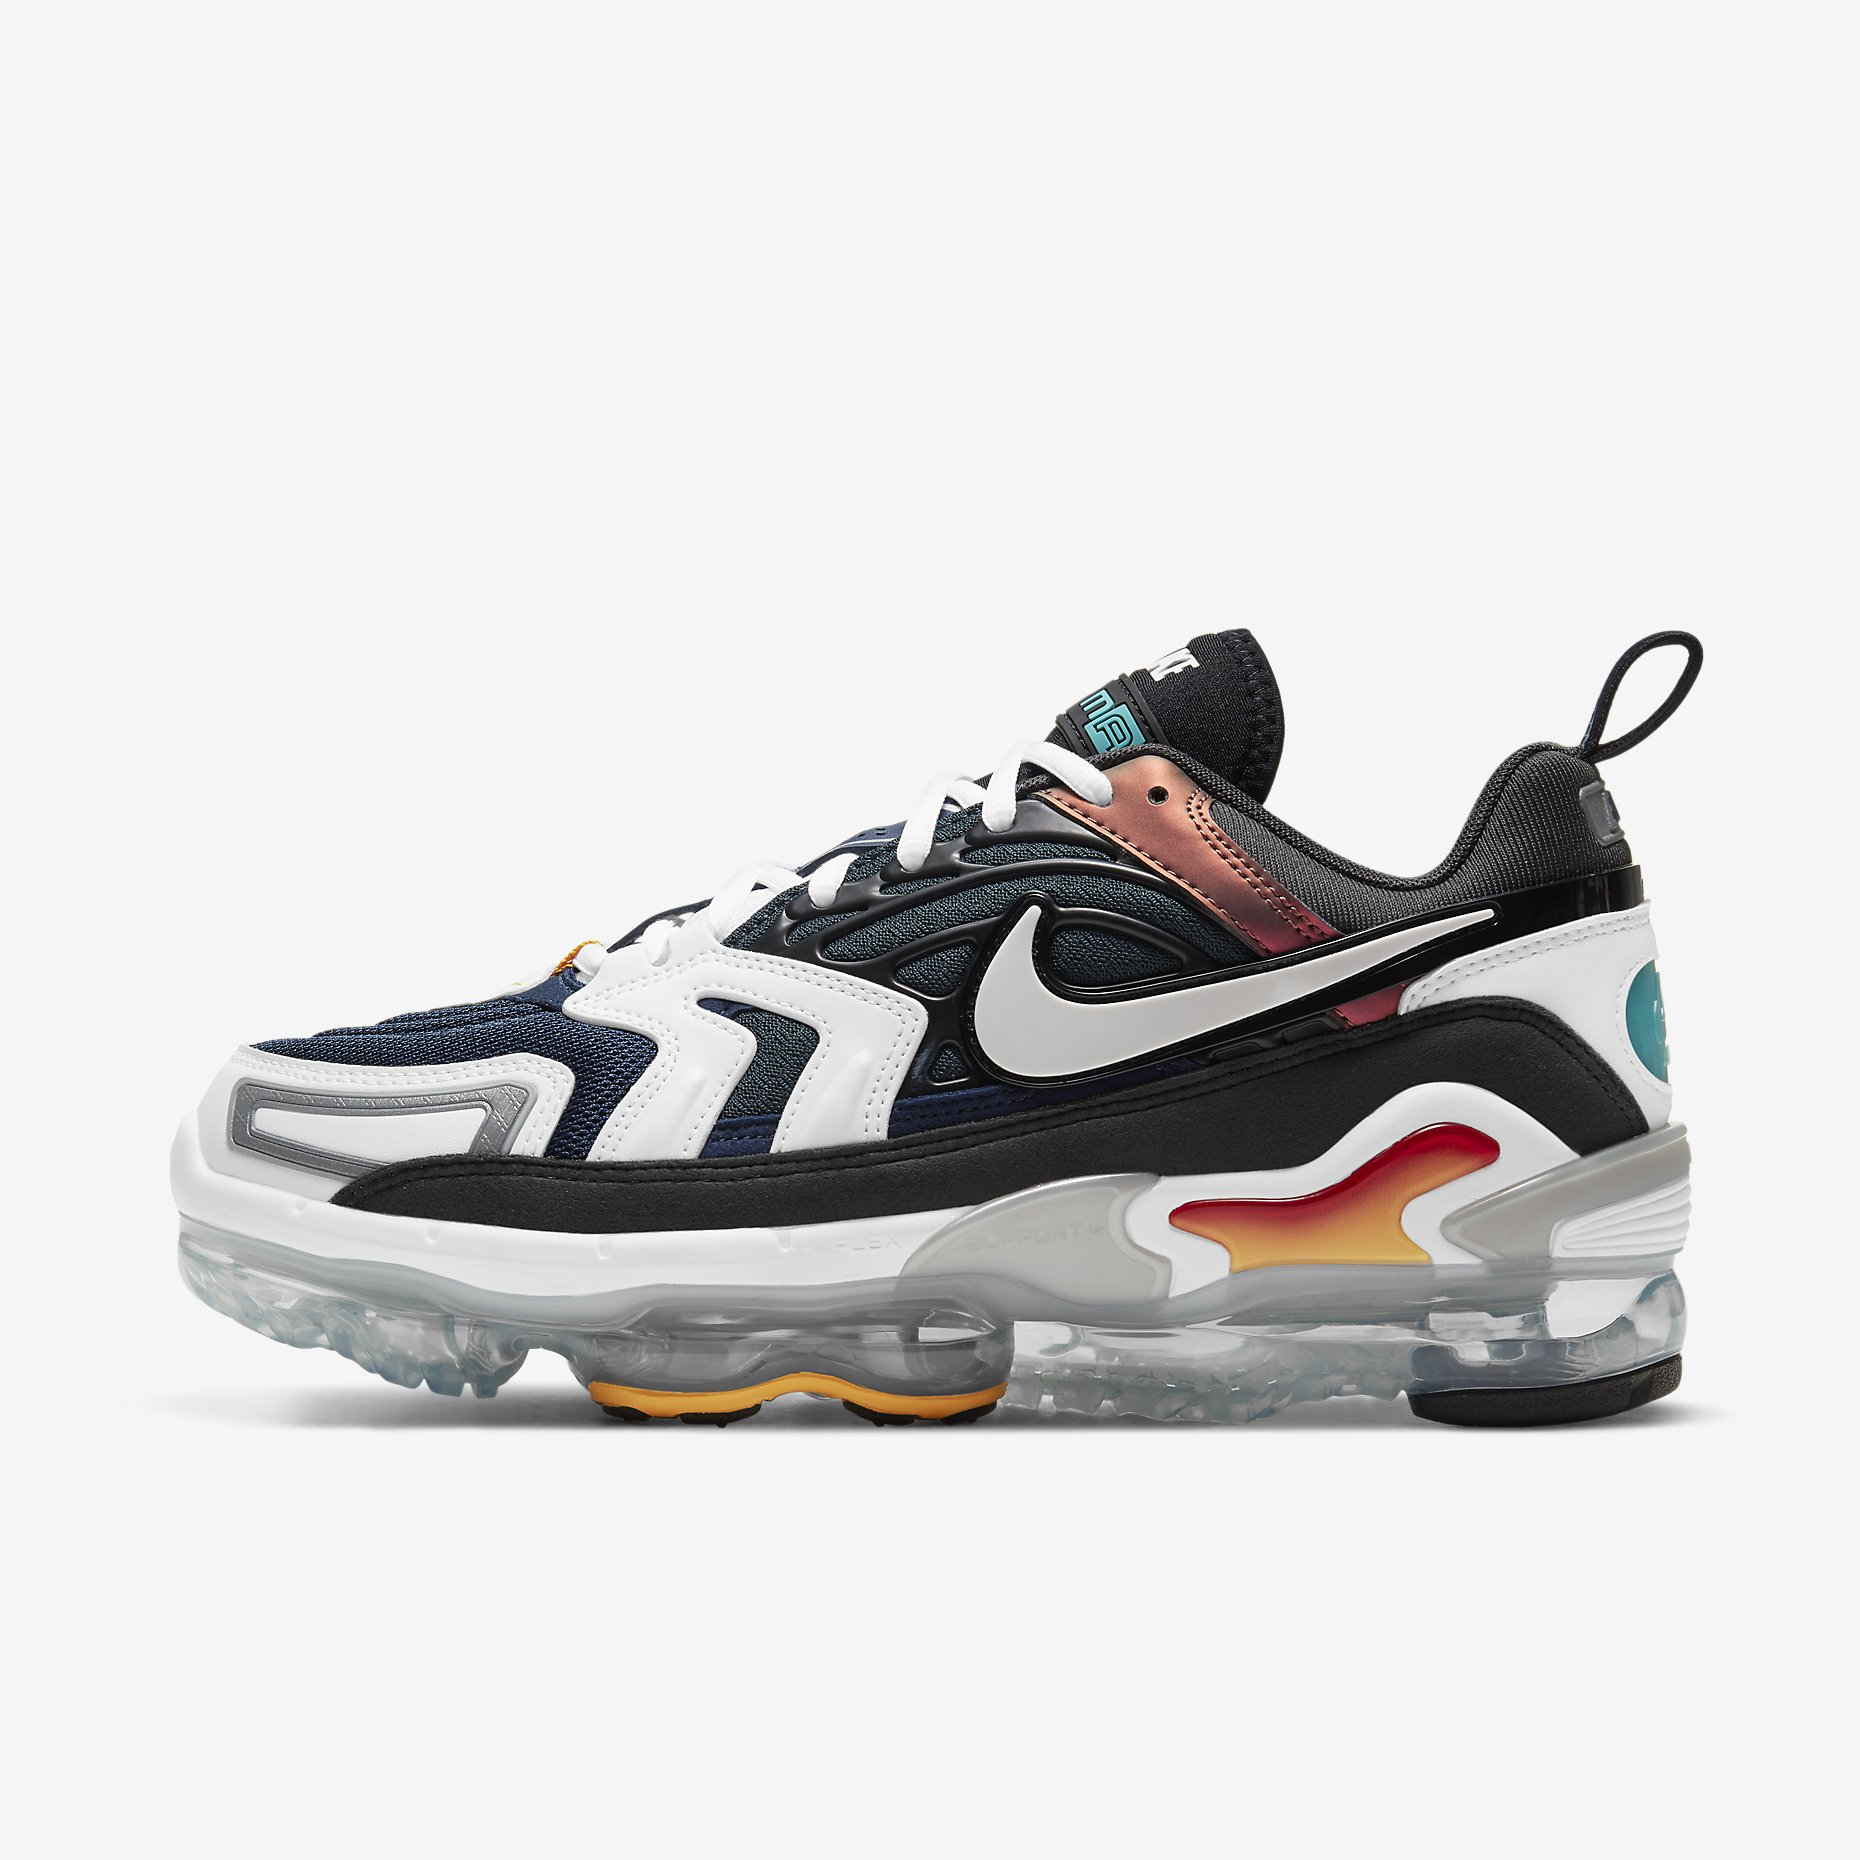 nike-air-vapormax-evo-evolution-of-icons-ct2868-0010